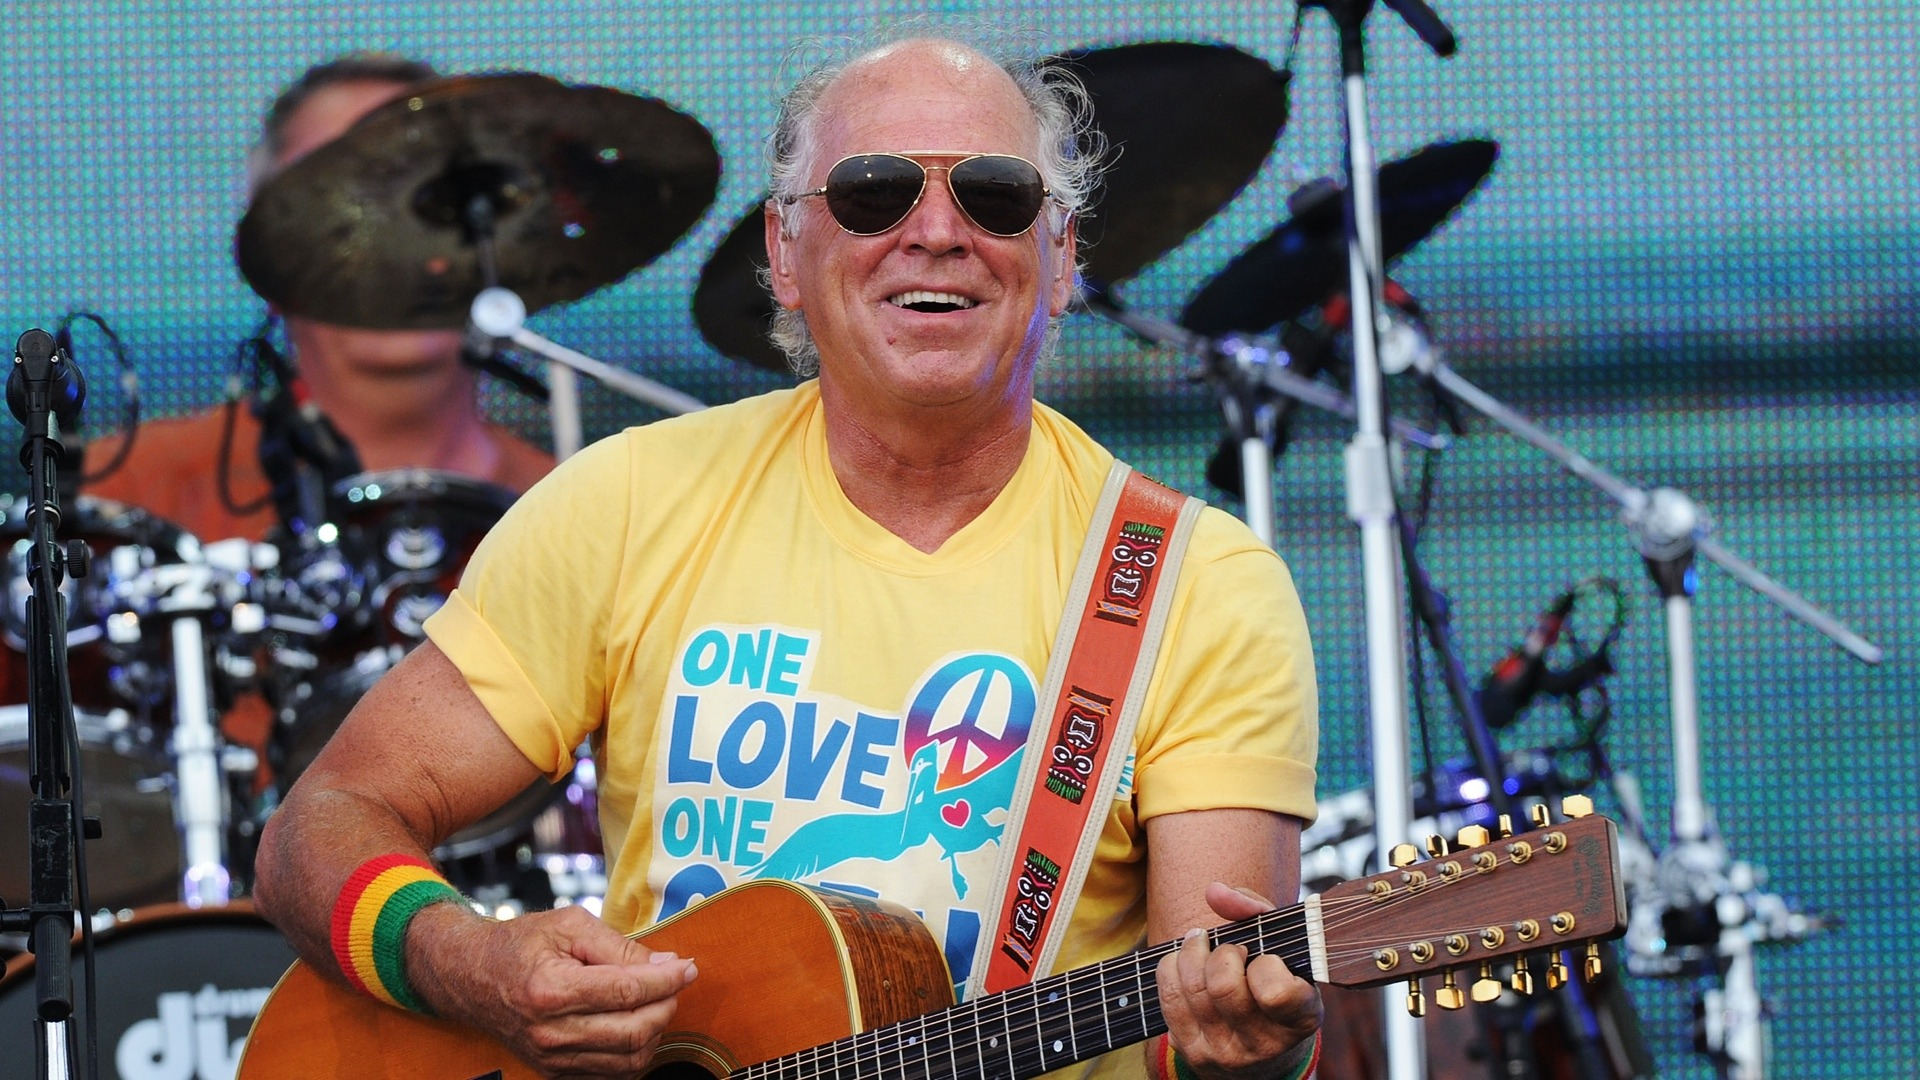 escape to margaritaville with this new jimmy buffett musical set for rh culture affinitymagazine us jimmy buffett musical reviews jimmy buffett music genre